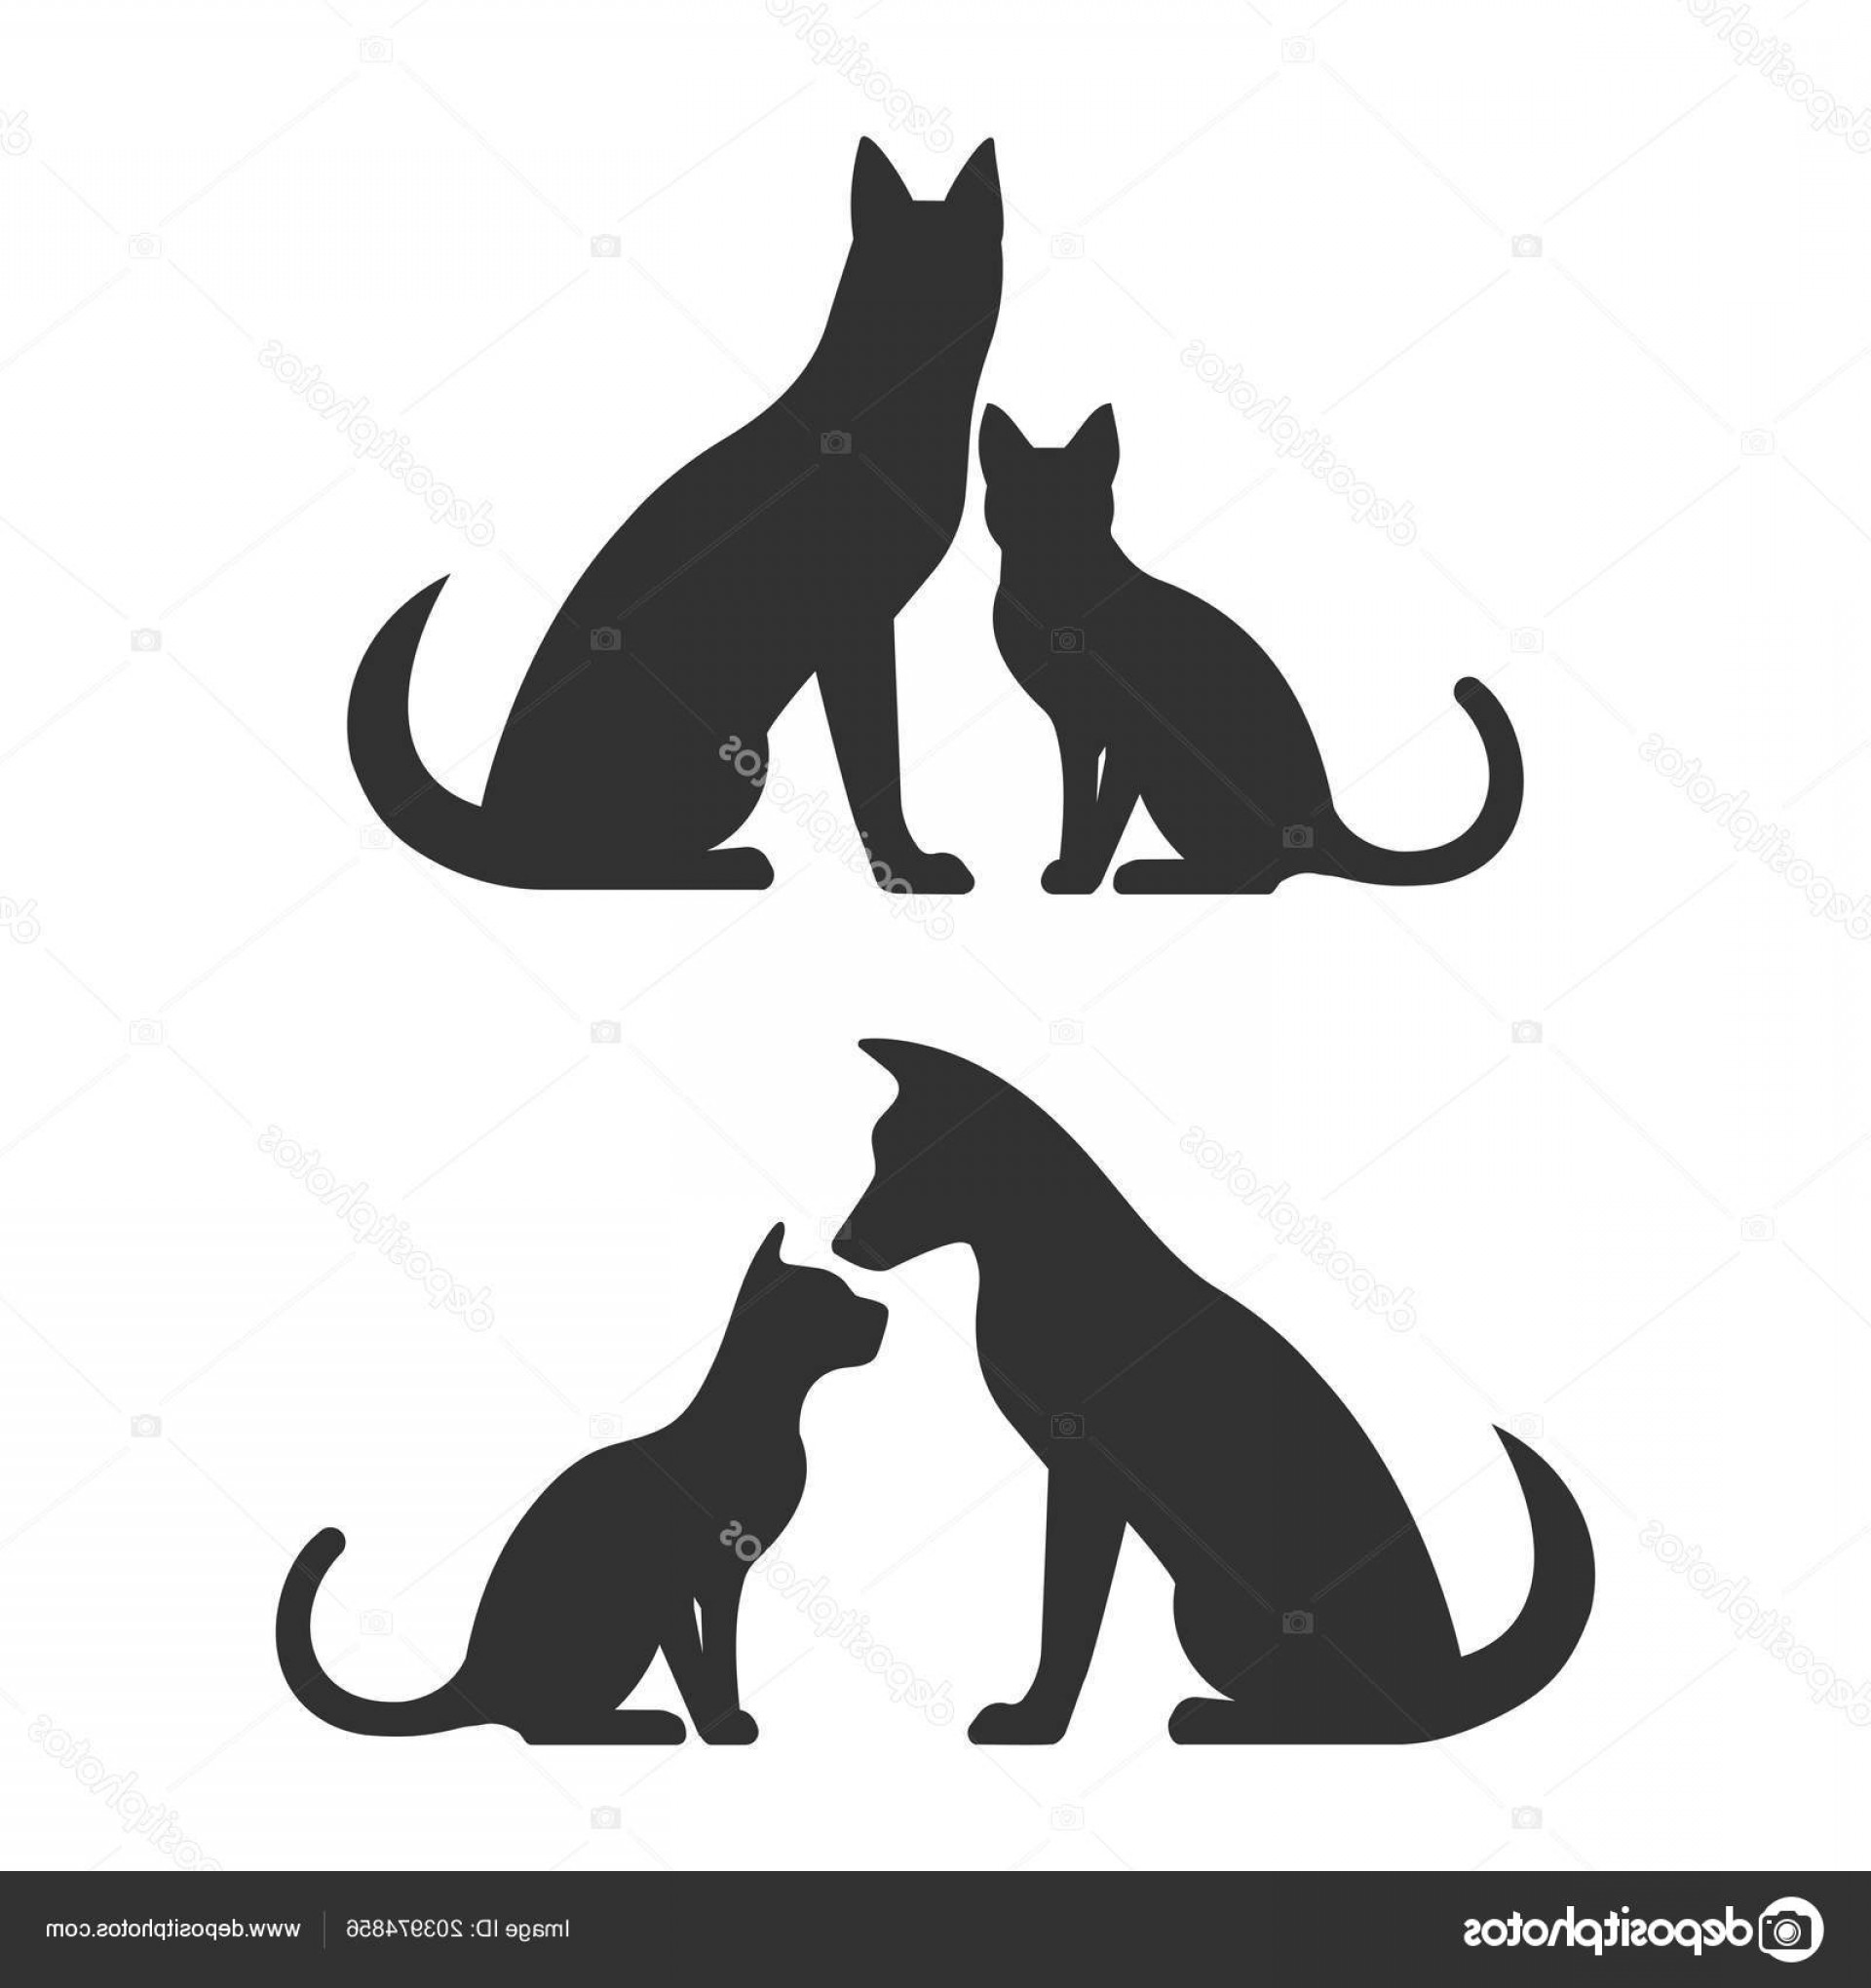 Dog And Cat Vector Illustration: Stock Illustration Silhouettes Dog Cat Vector Illustration